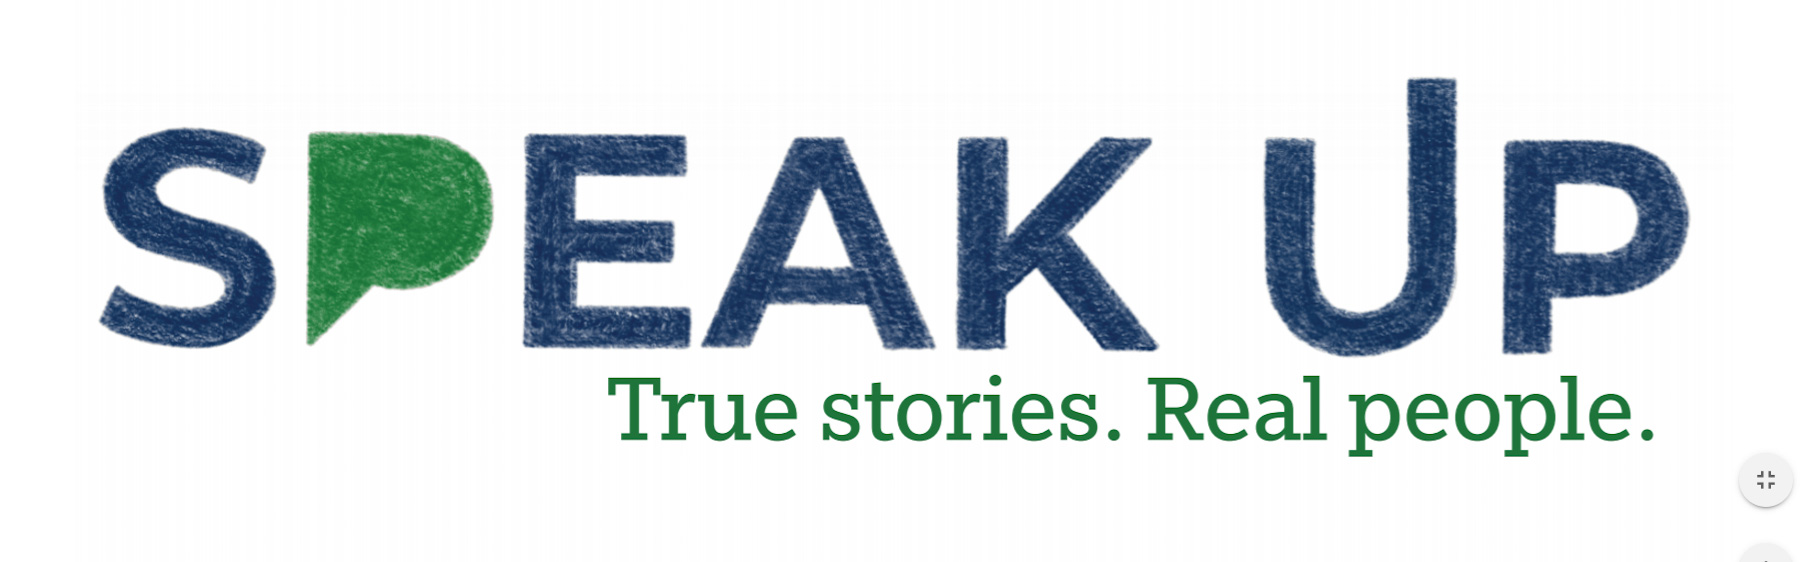 Speak Up logo.jpg